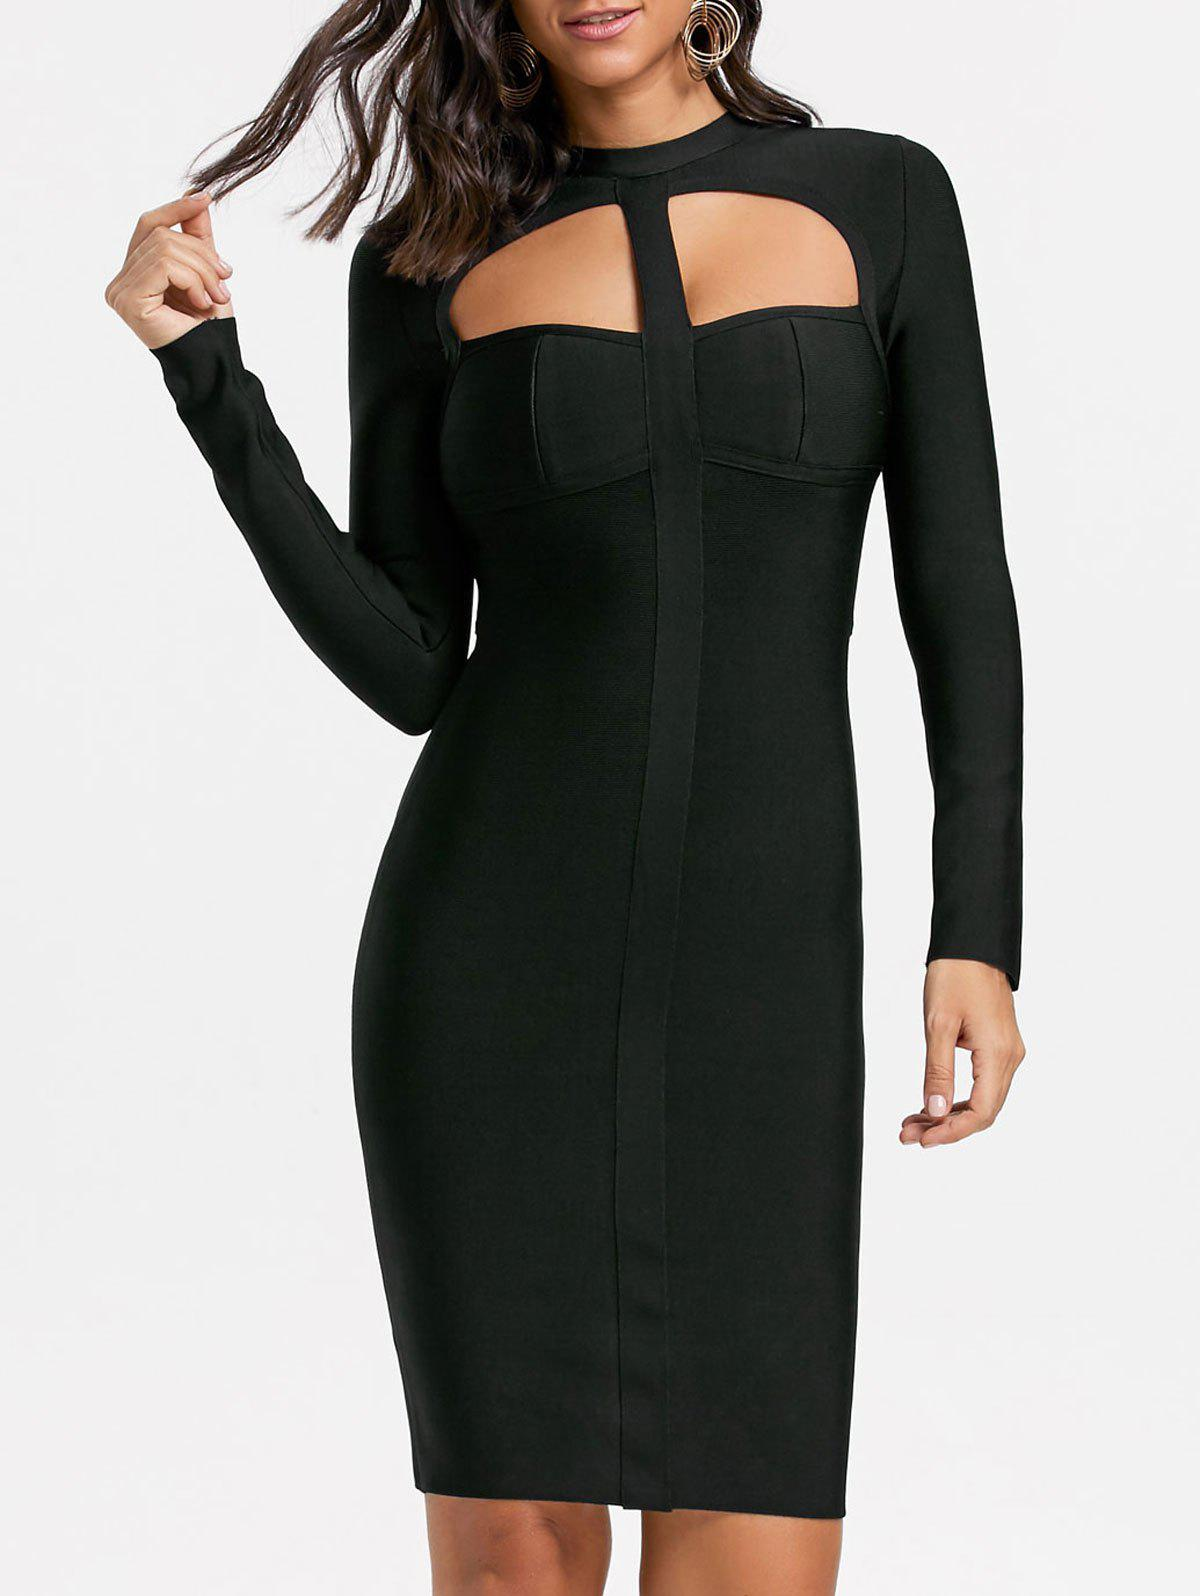 Long Sleeve Cut Out Club Bandage Dress - BLACK L